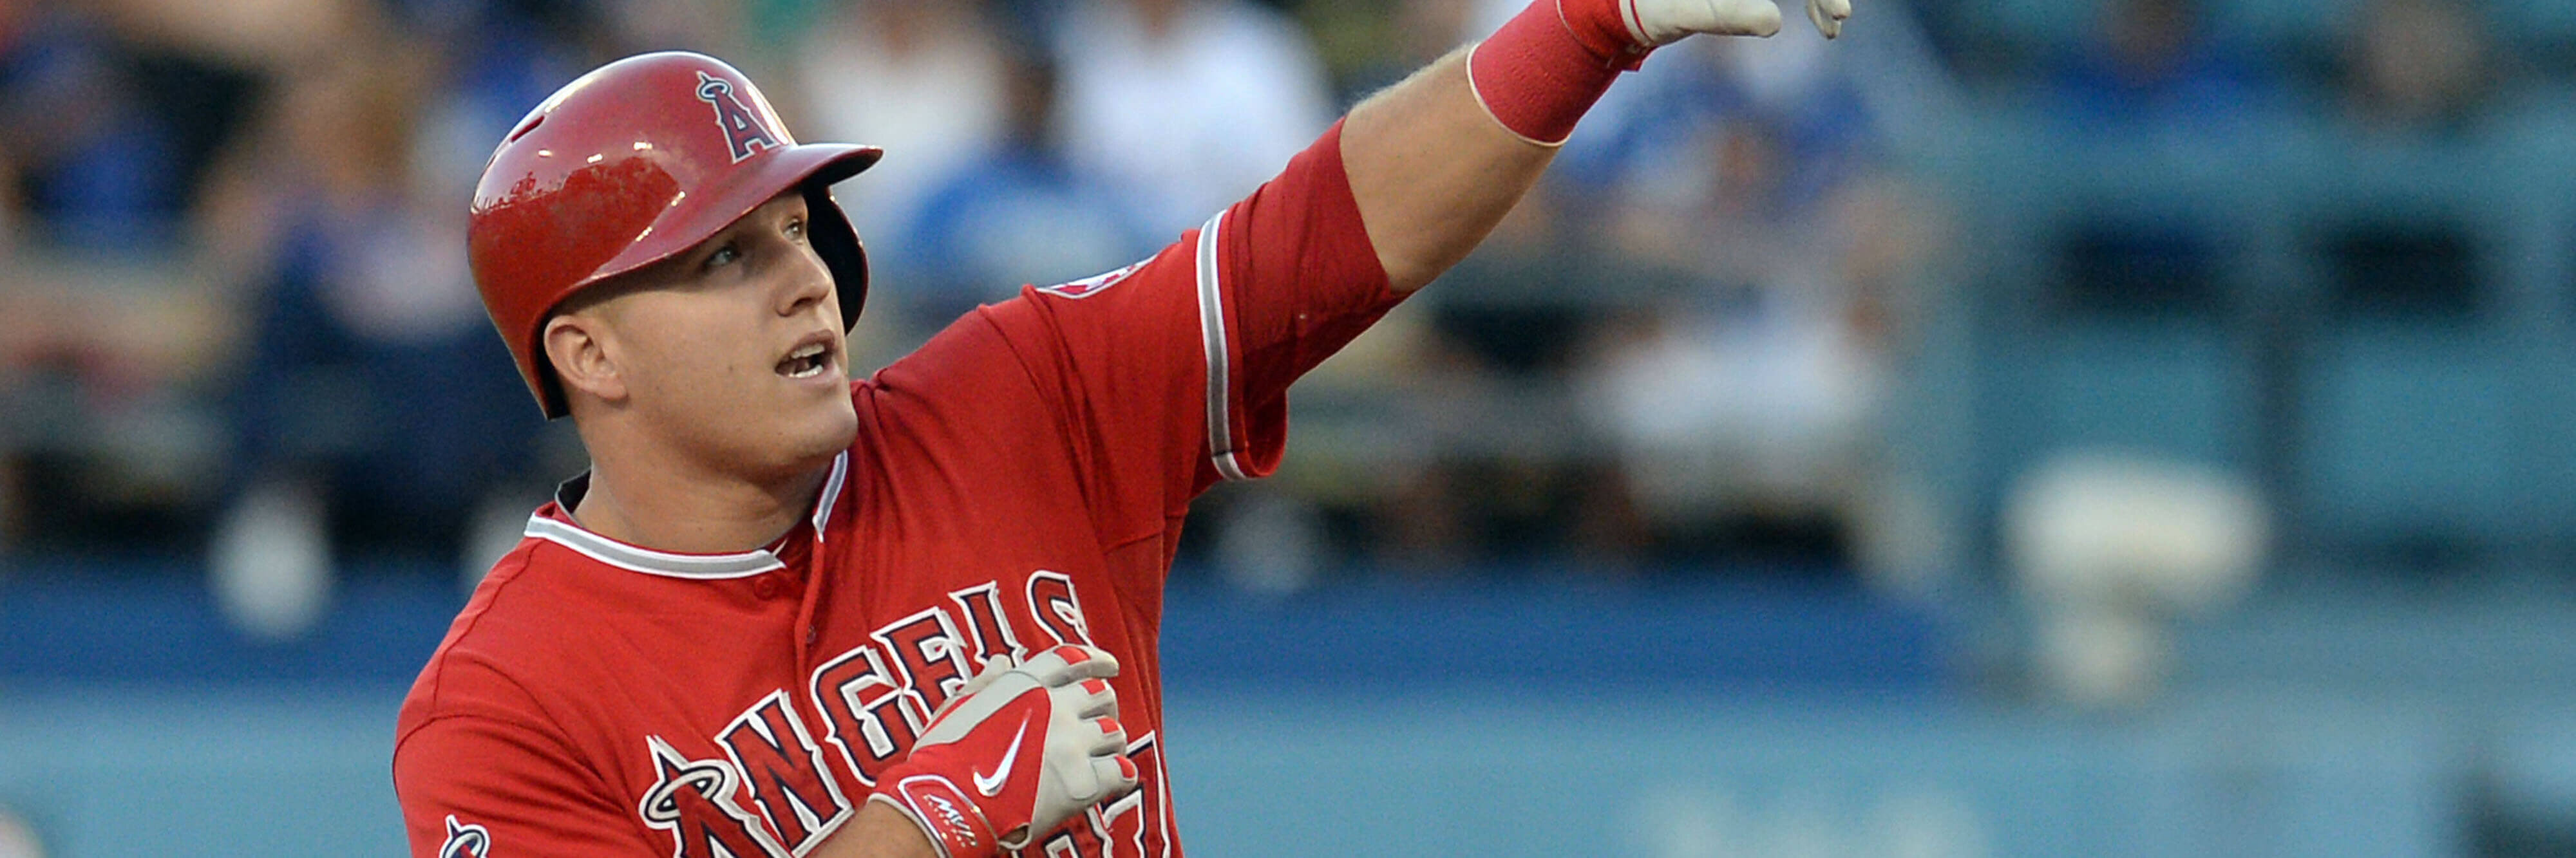 Mike Trout MLB Awards Odds & Analysis For 2020 Season